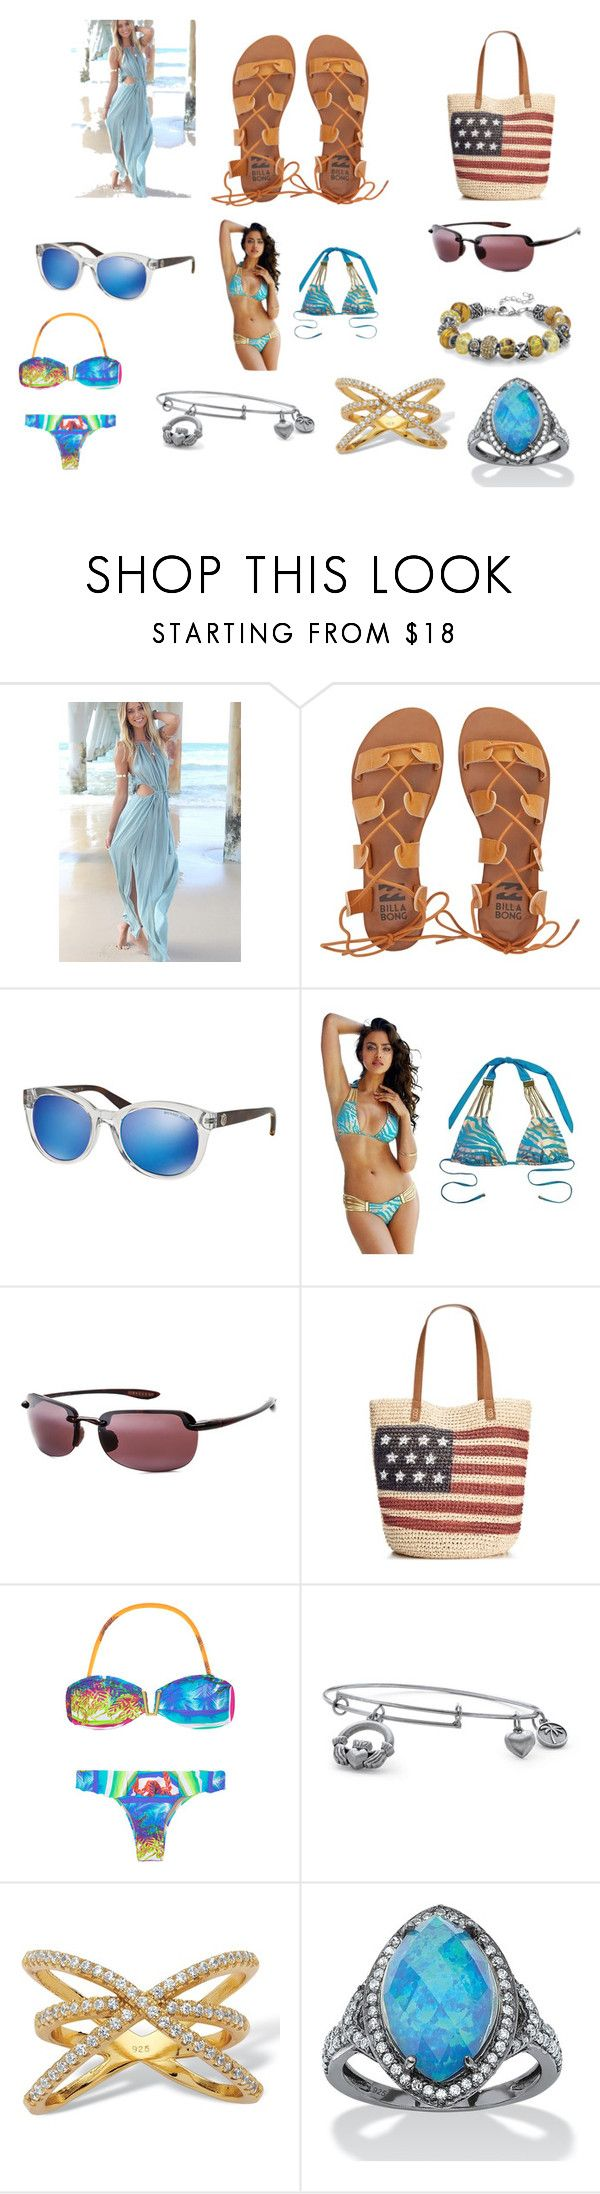 Lucy Luco - Beach Style by exkniha on Polyvore featuring Beach Bunny, Billabong, Style & Co., Palm Beach Jewelry, Maui Jim, Michael Kors, women's clothing, women's fashion, women and female